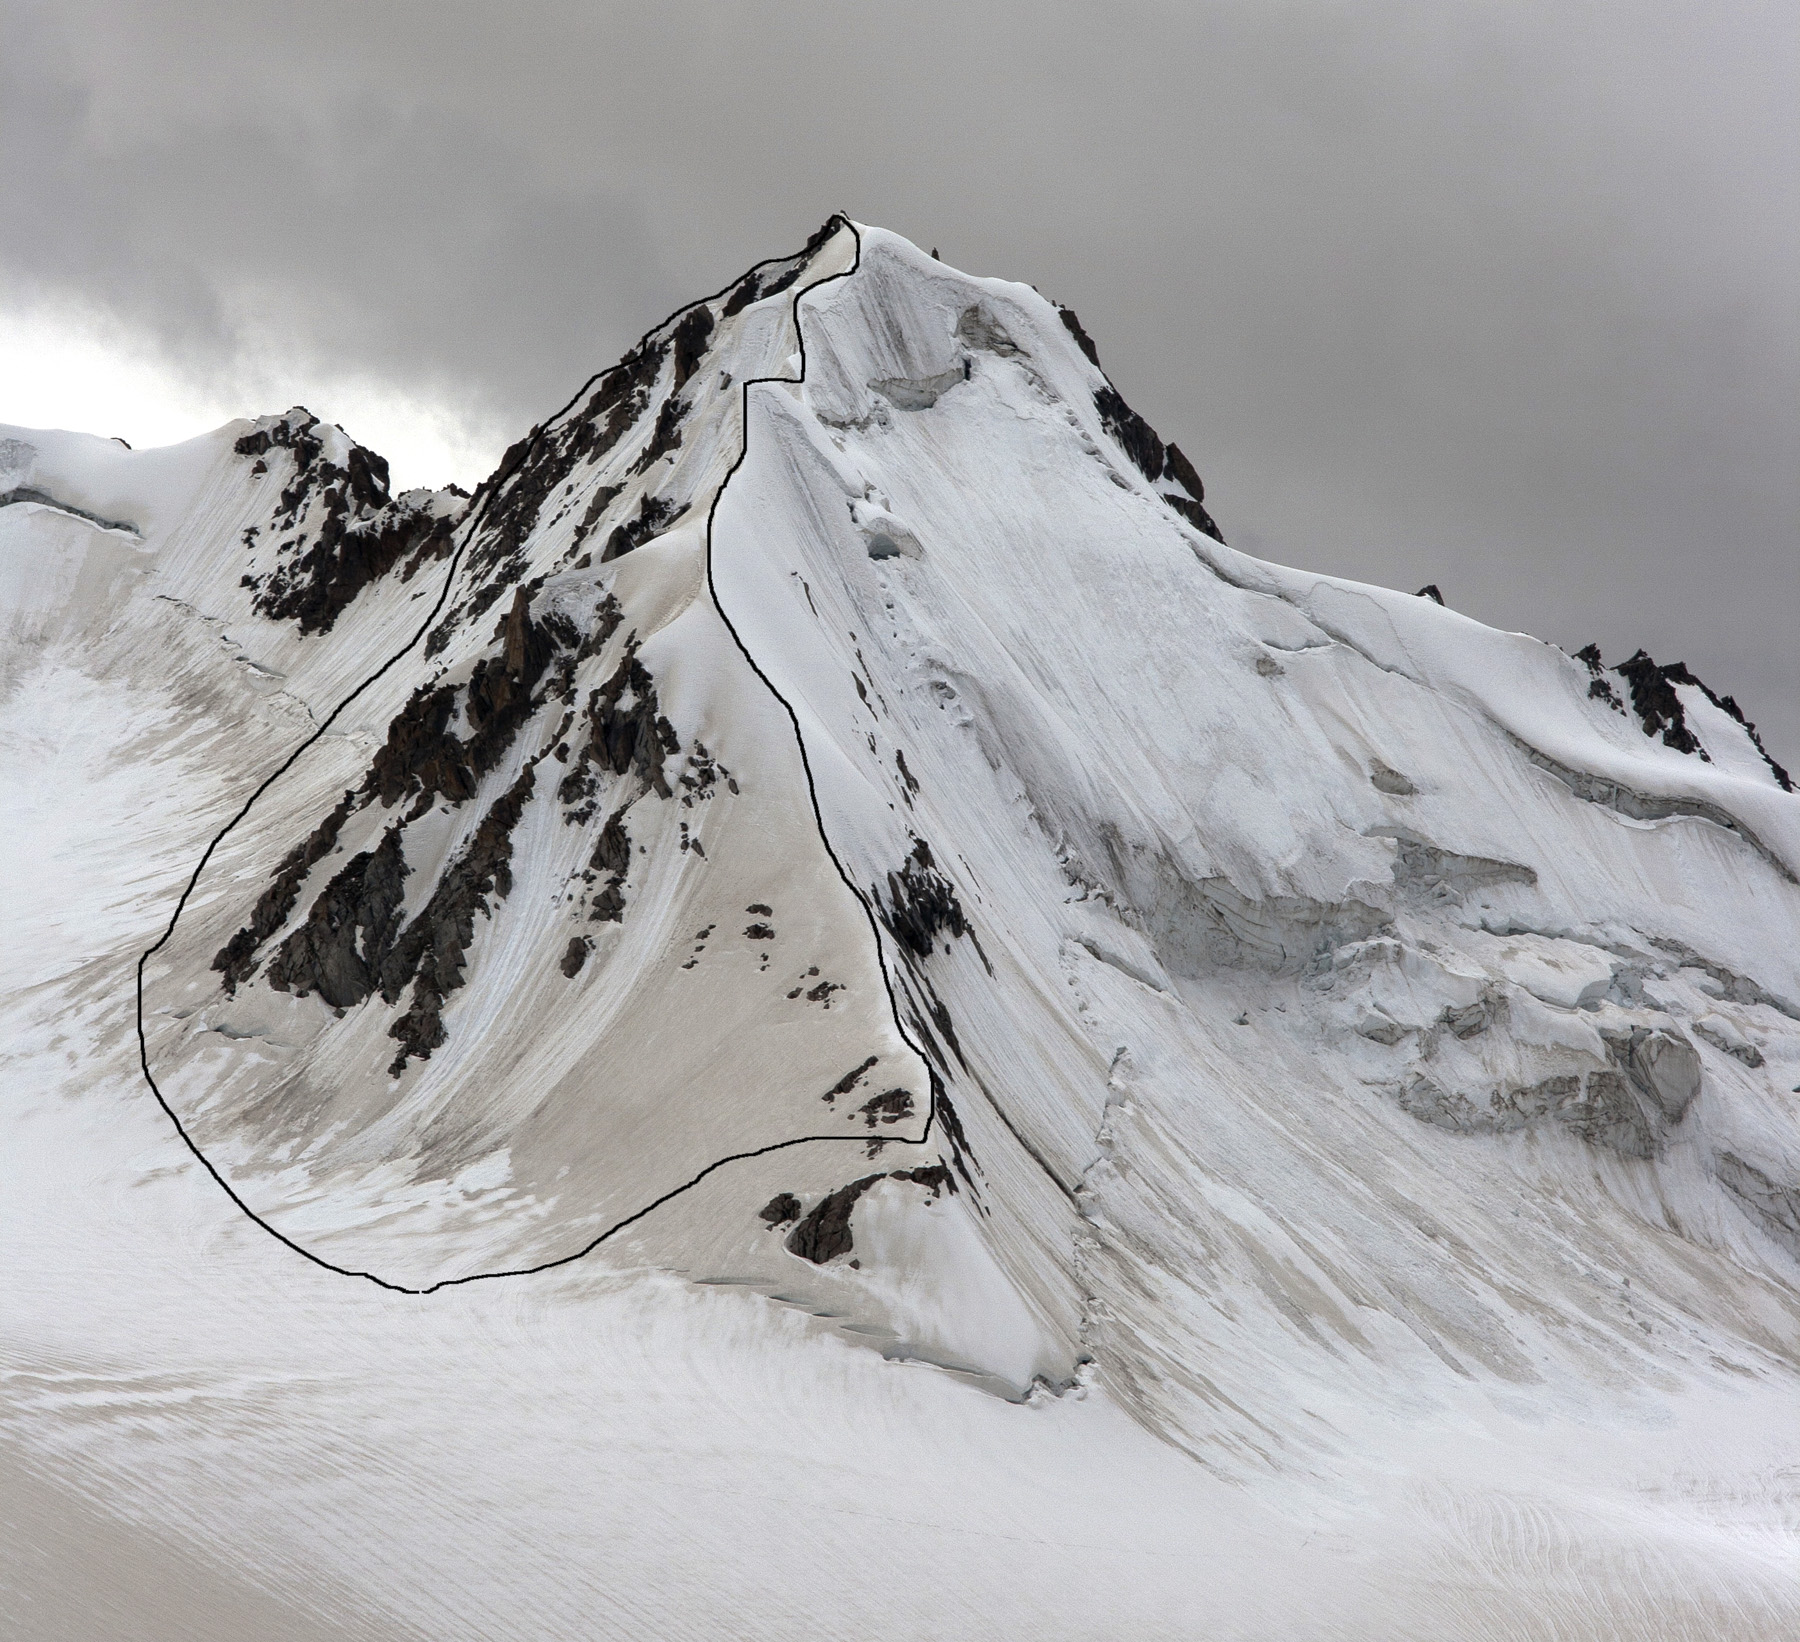 Koh-e-Baffa. The peak was traversed from right to left: up north ridge, and down southeast ridge and east flank.